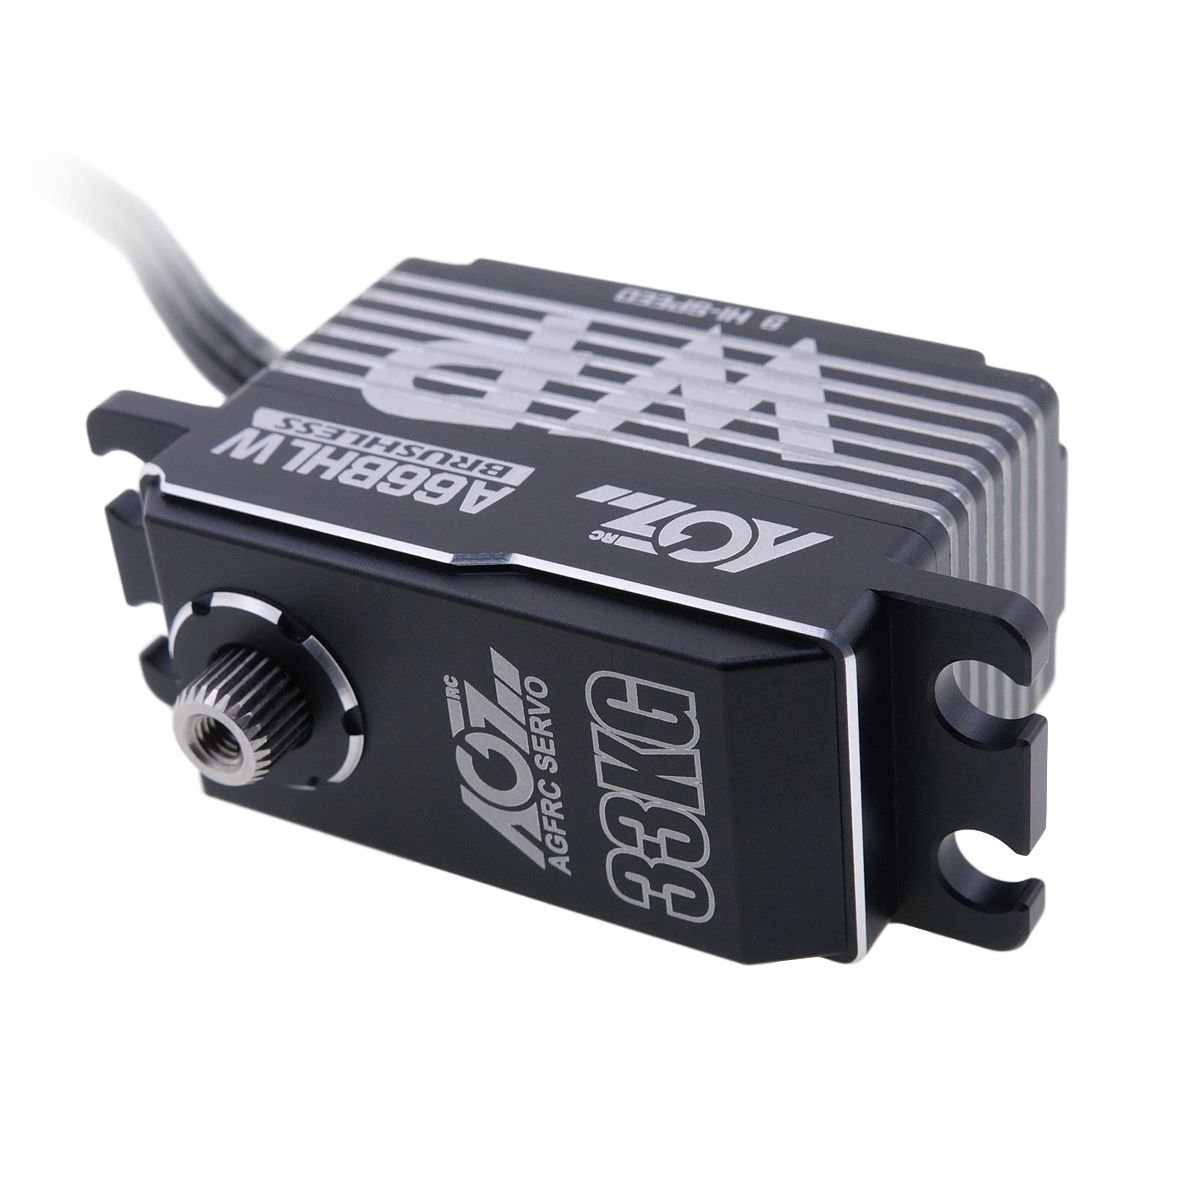 AGF RC A66BHLW Upgrade Gear 33KG 0.068Sec Super Spec Magnetic Waterproof Low Profile Brushless Digital Servo for ET410.2 1/10th Scale 4WD Baby Truggy